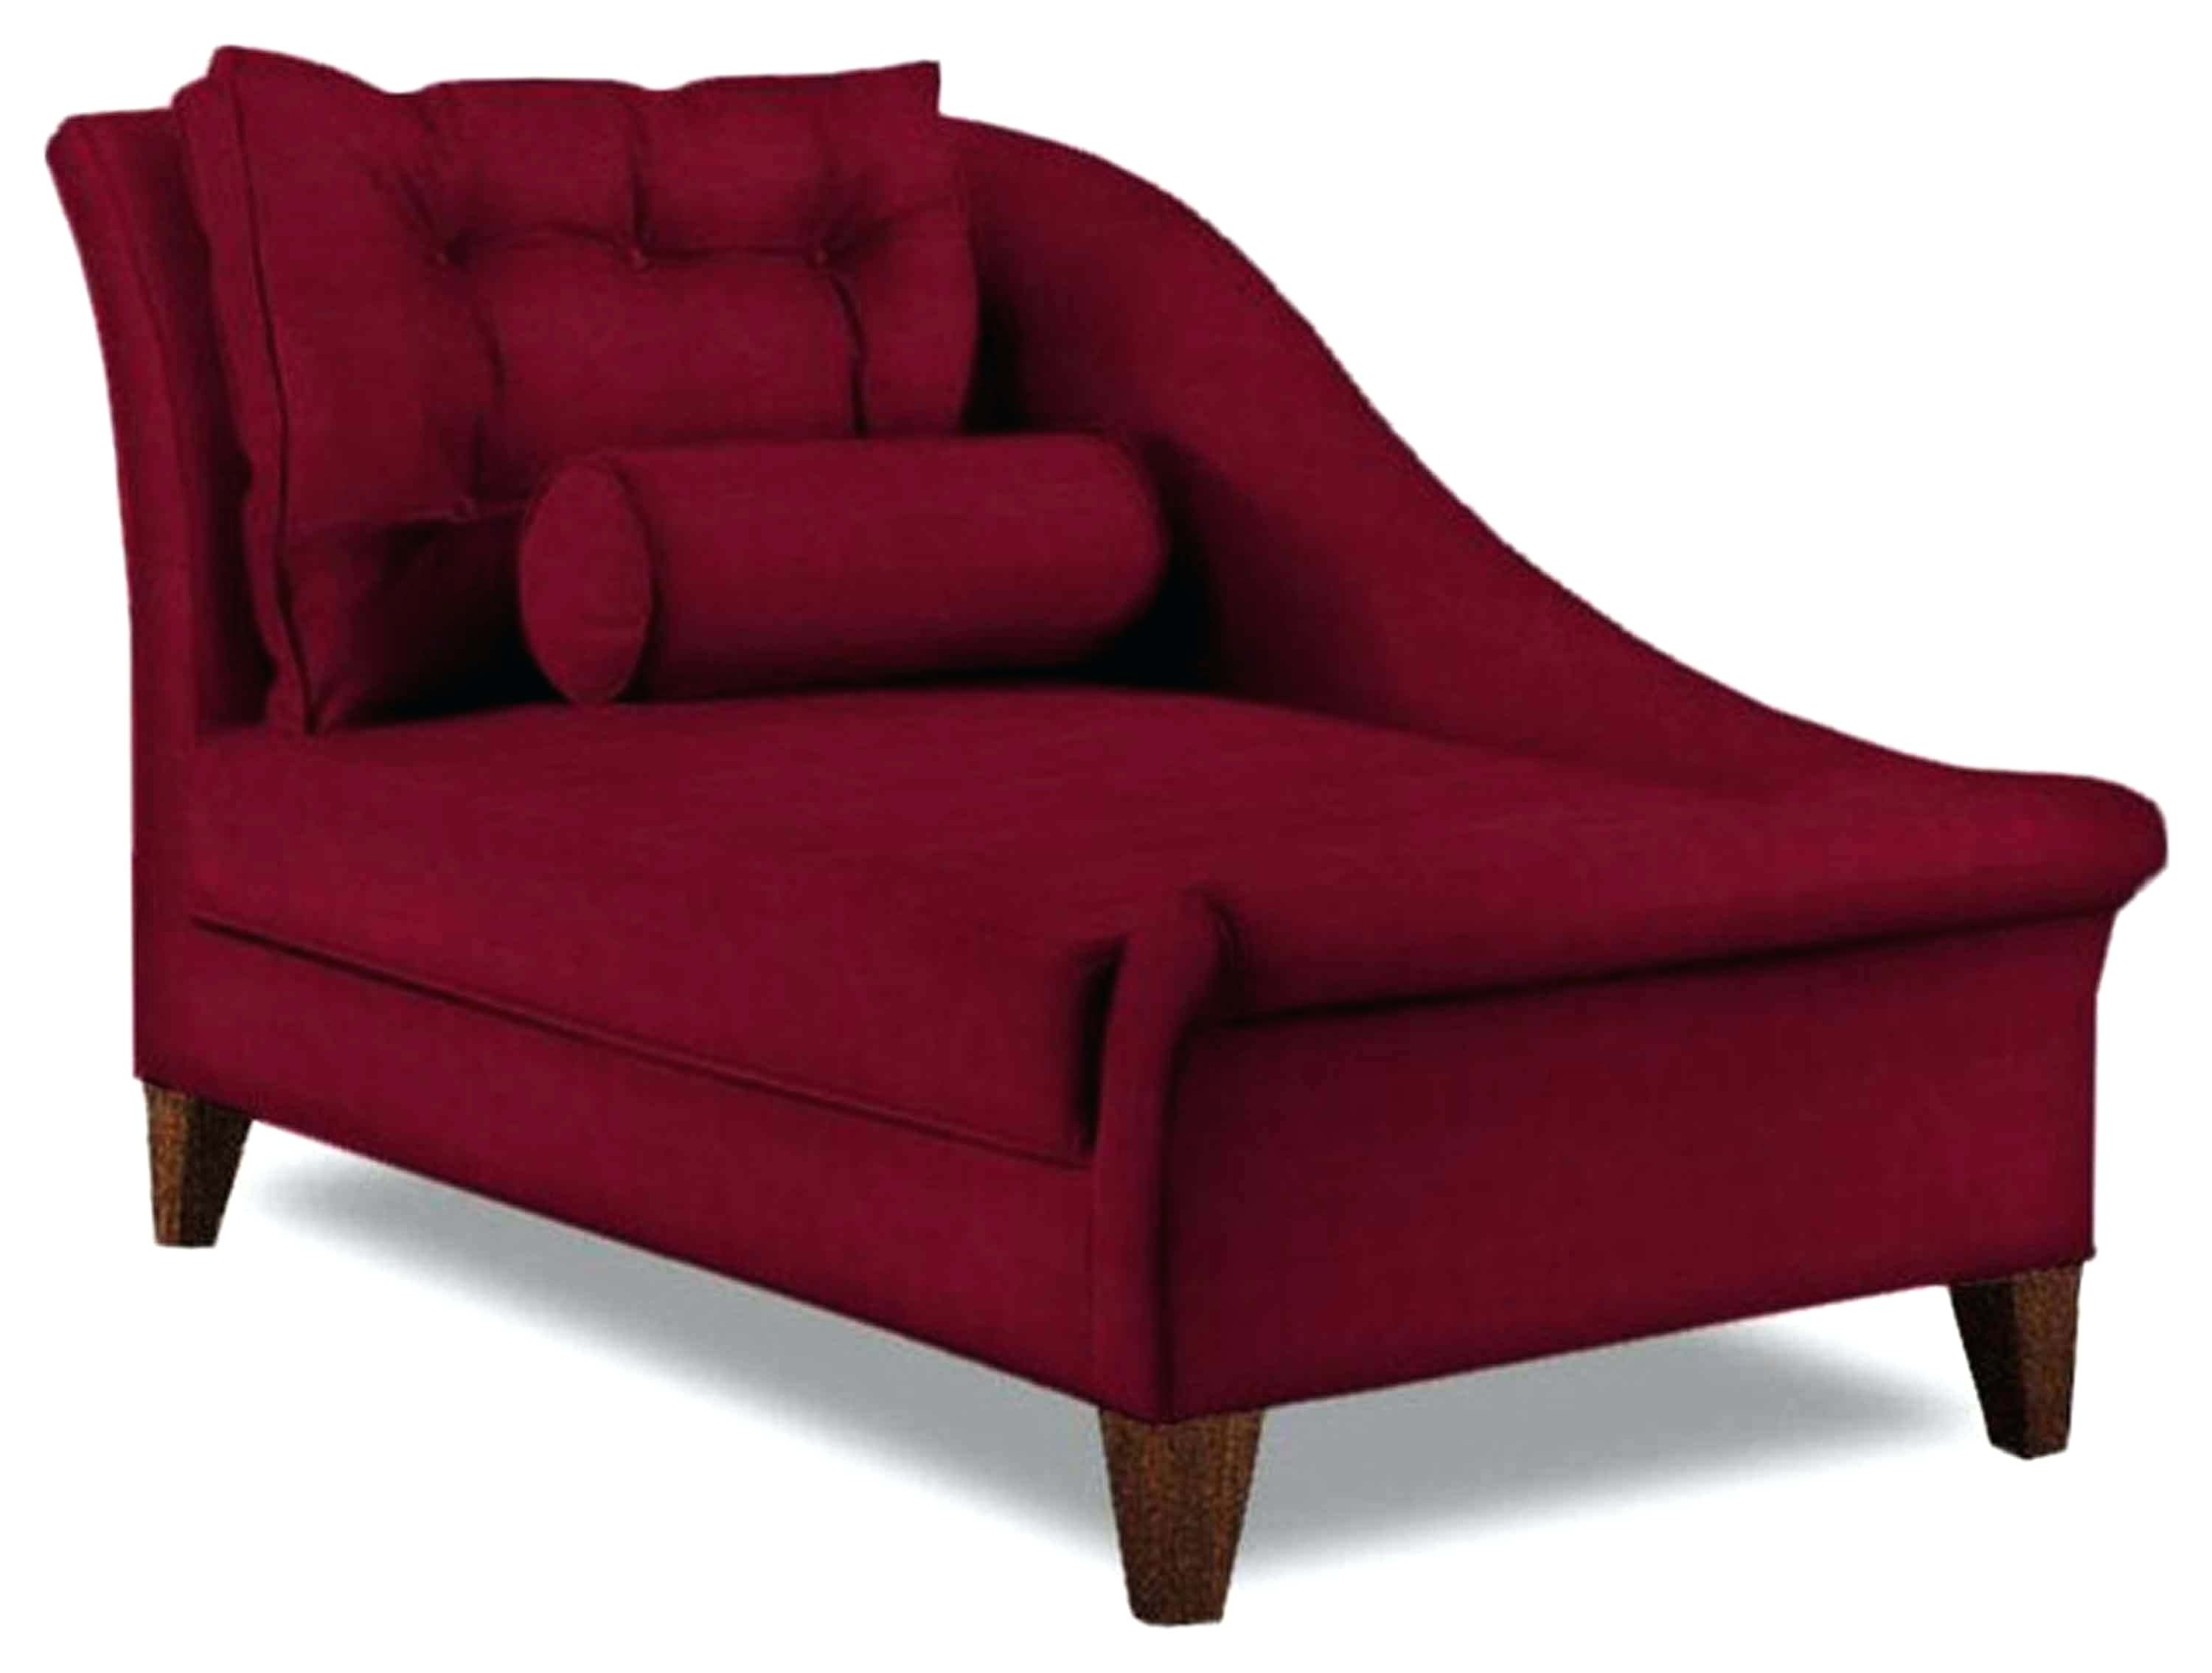 2018 Chaise Lounge Chair Slipcovers Chaise Lounge Chair With Arms In Chaise Lounge Chairs With Arms Slipcover (View 1 of 15)